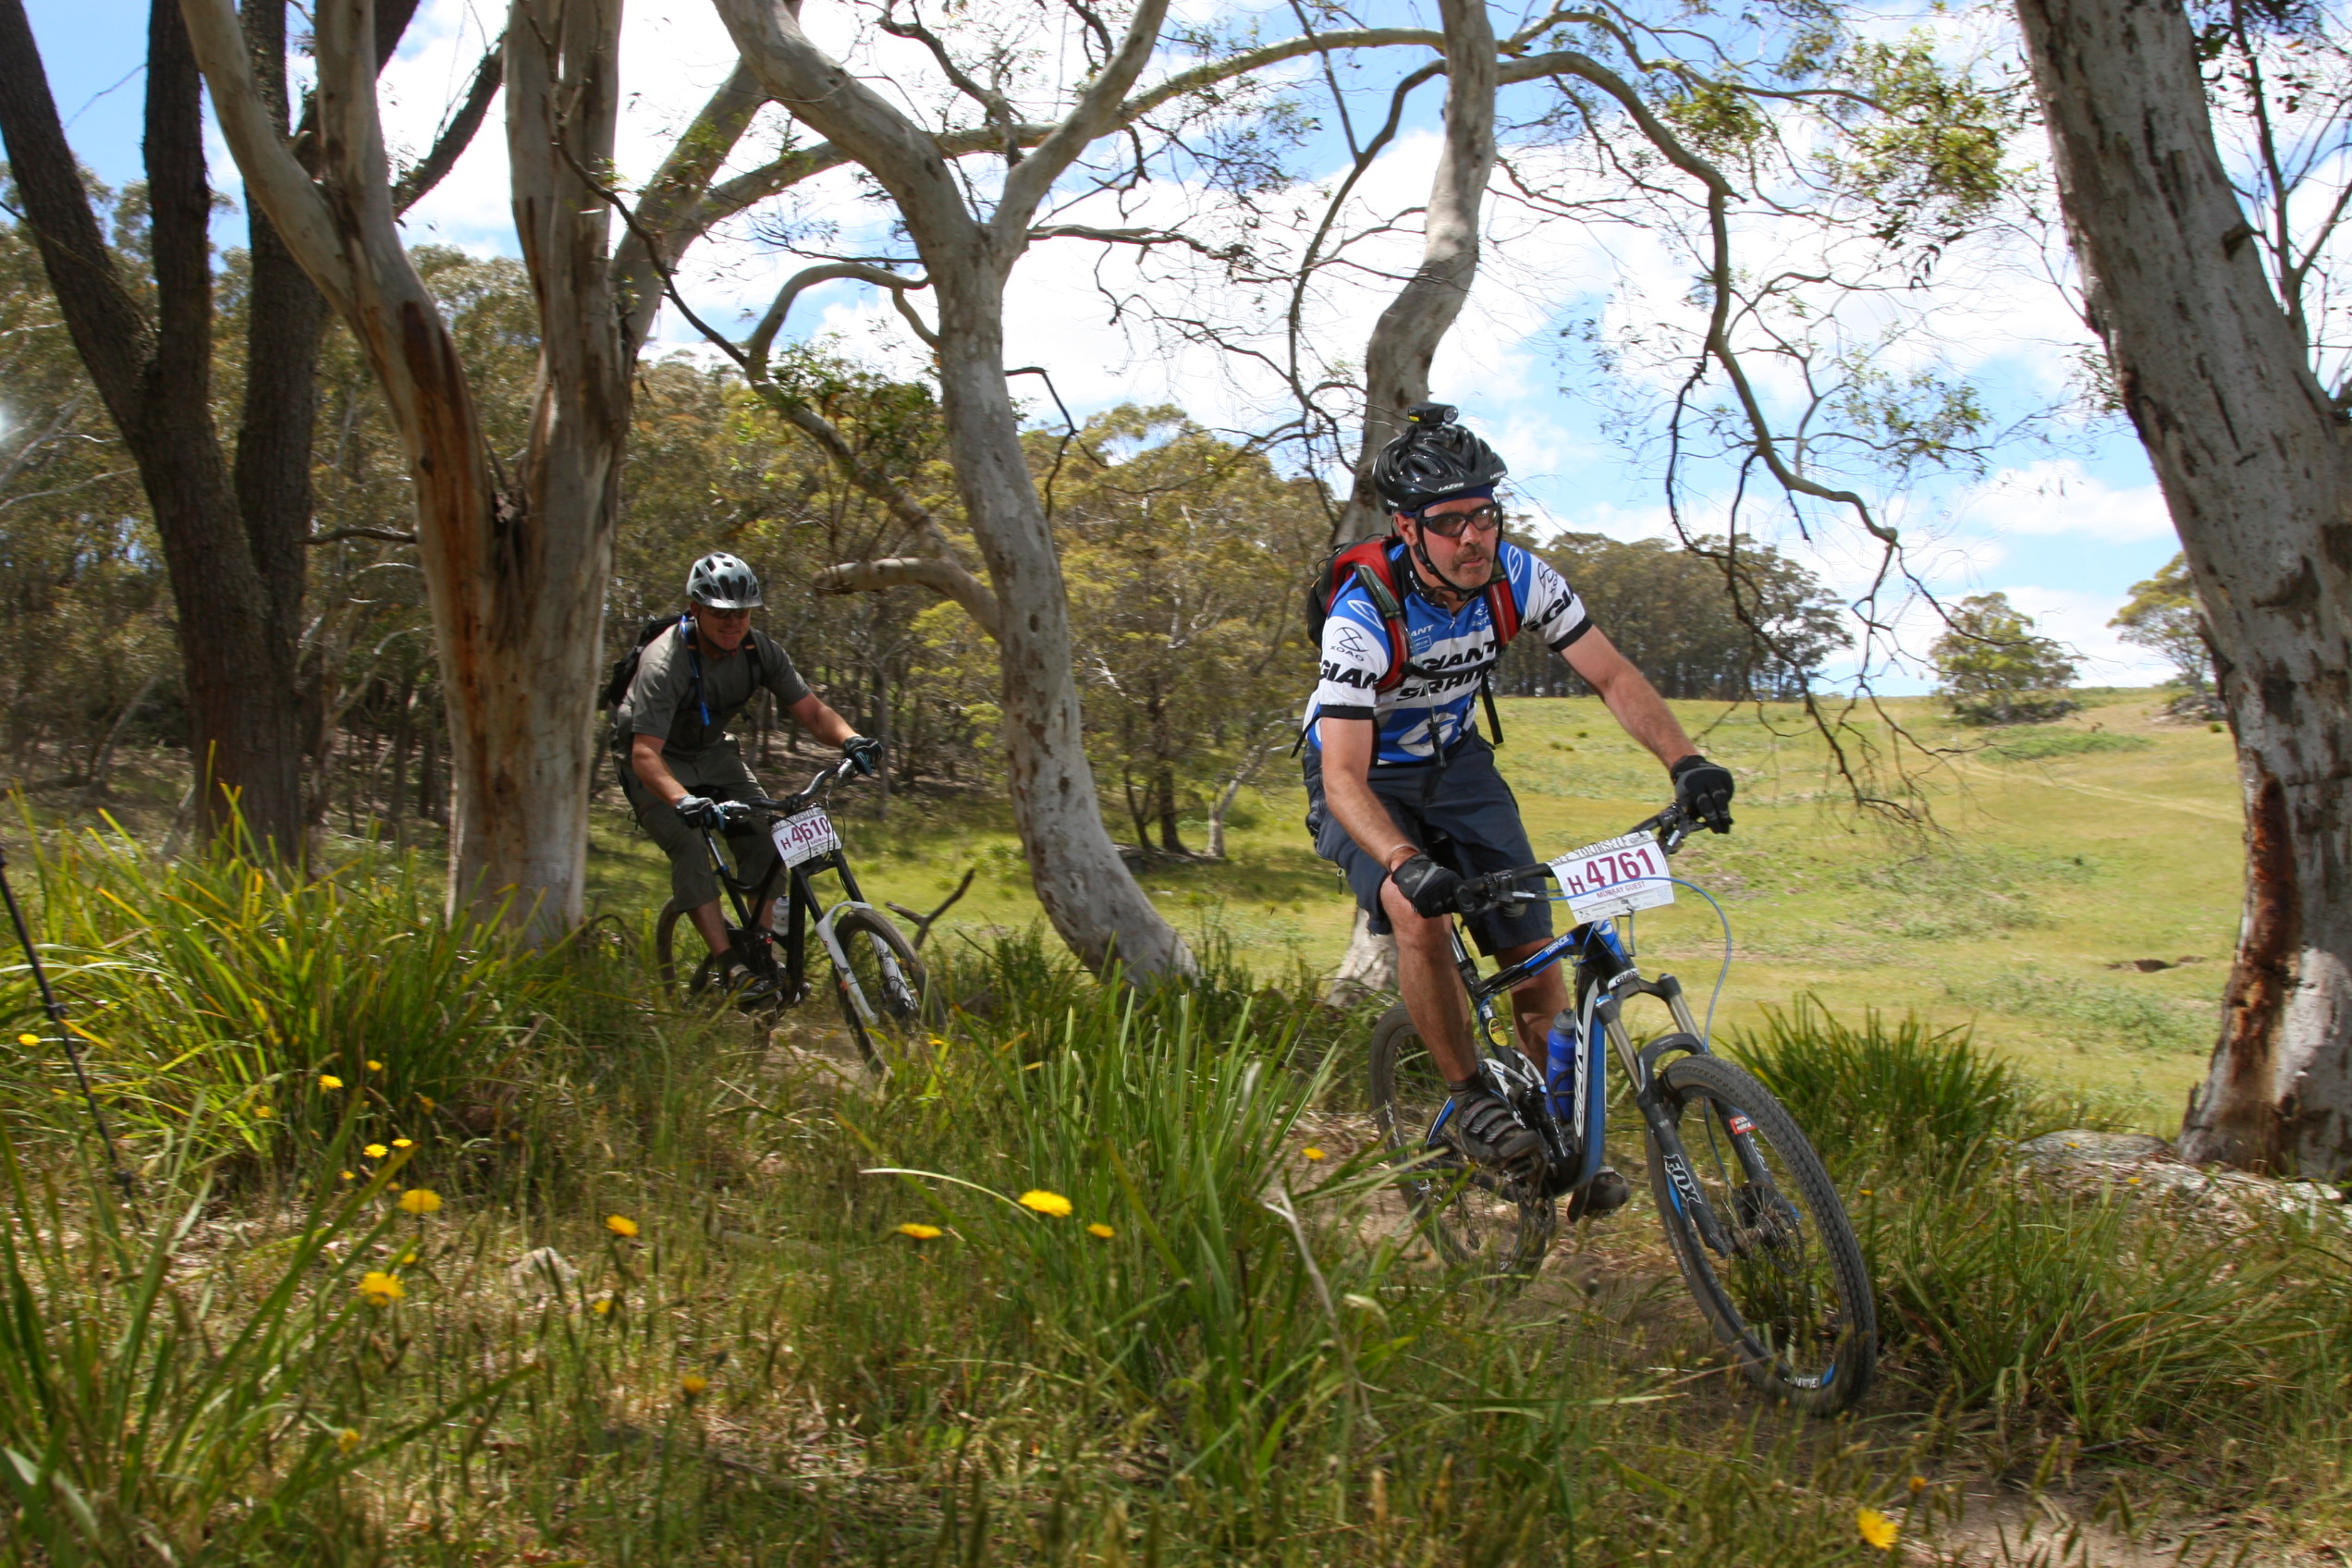 10 business lessons from Mountain Bike riding